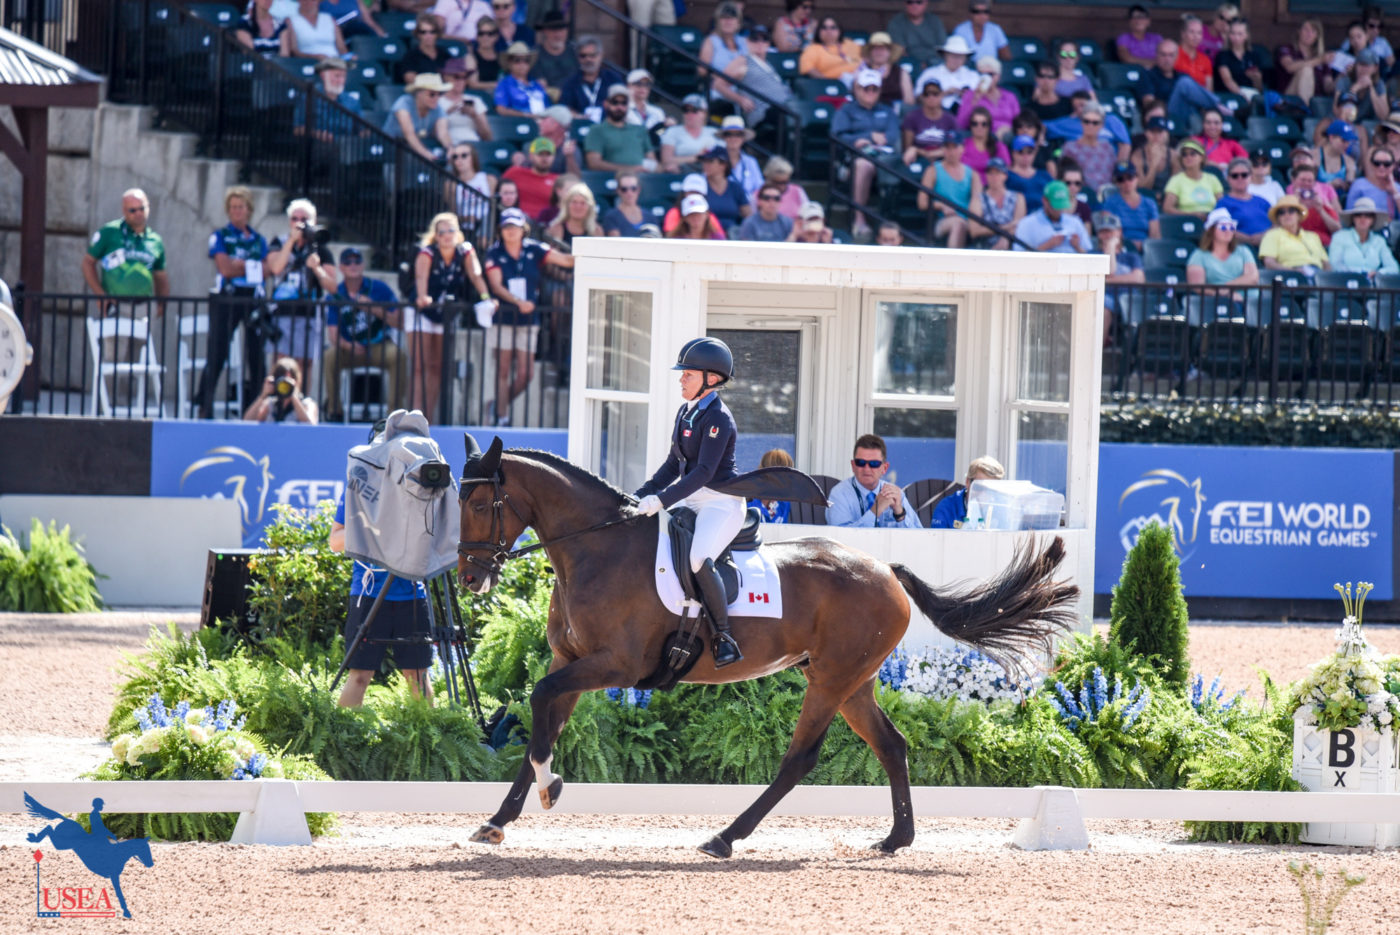 22nd - Hawley Bennett-Awad and Jollybo (CAN) - 32.7